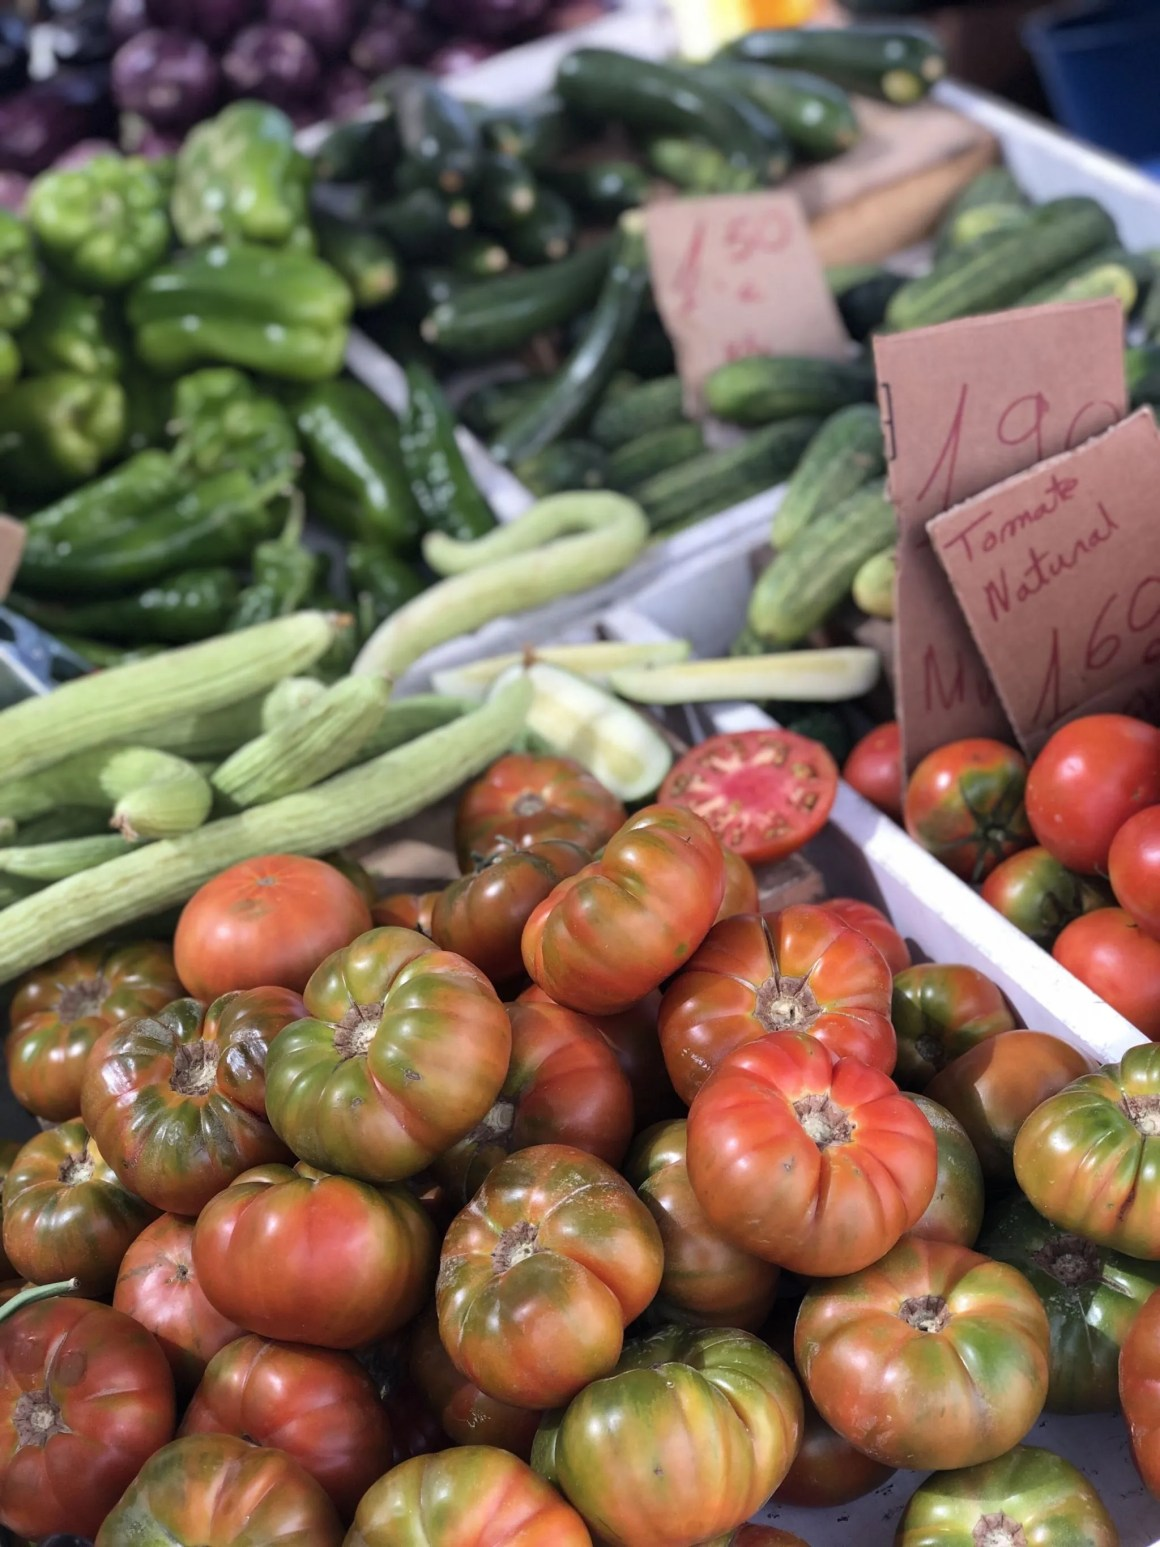 tomatoes and courgettes at market